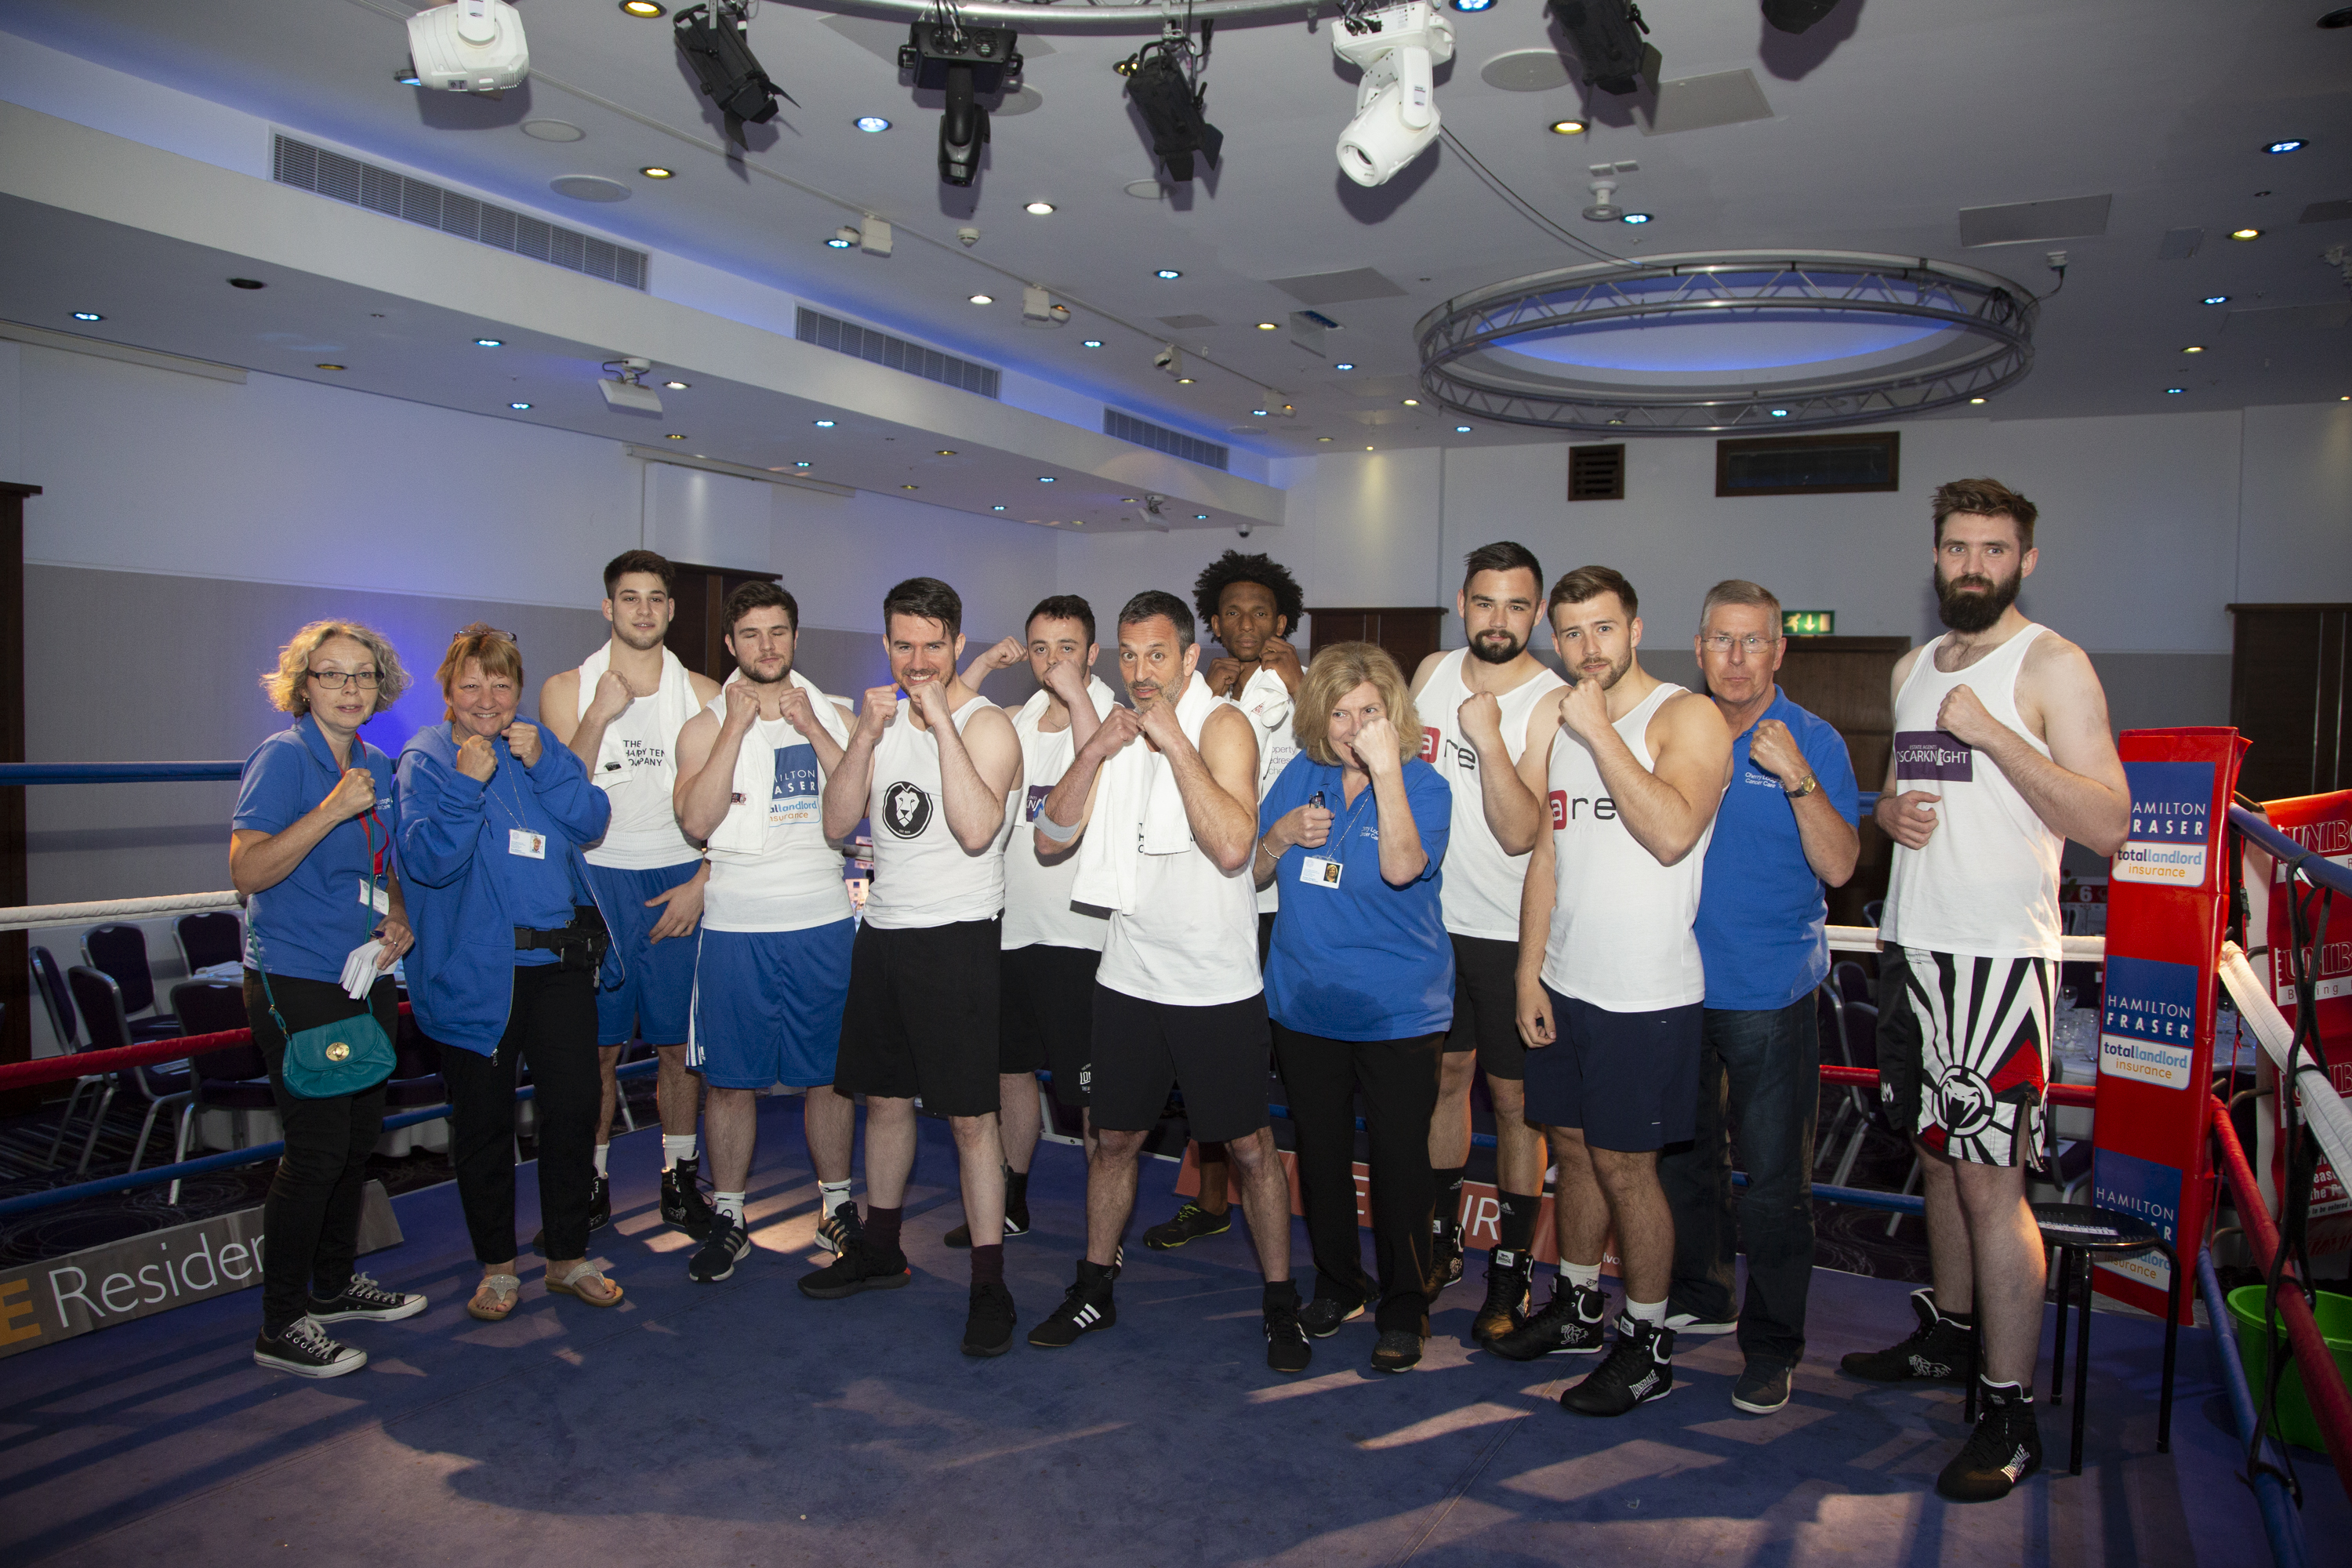 'Rumble with the Agents' raises over £16,000 for Cherry Lodge Cancer Care